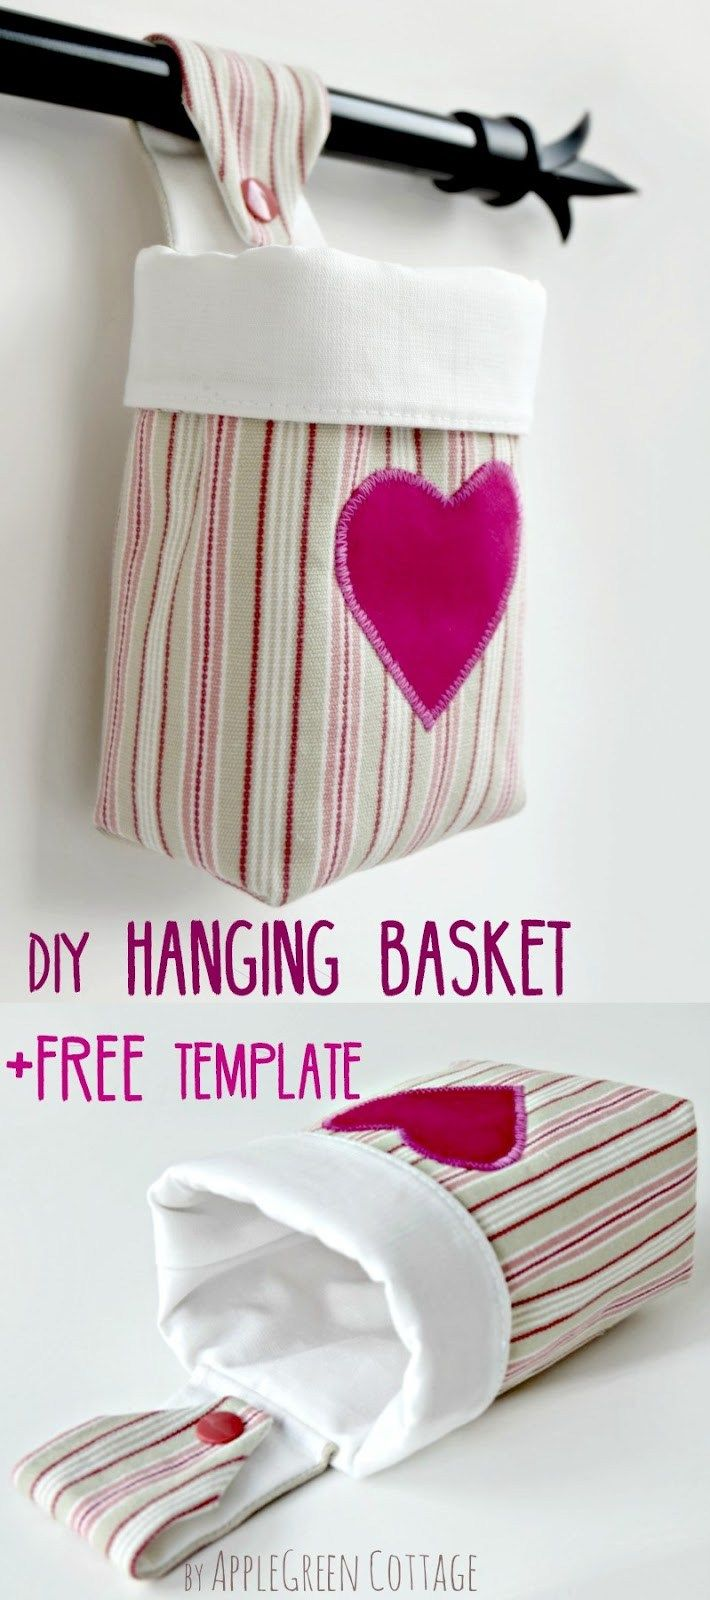 How To Make A Hanging Storage Basket - AppleGreen Cottage